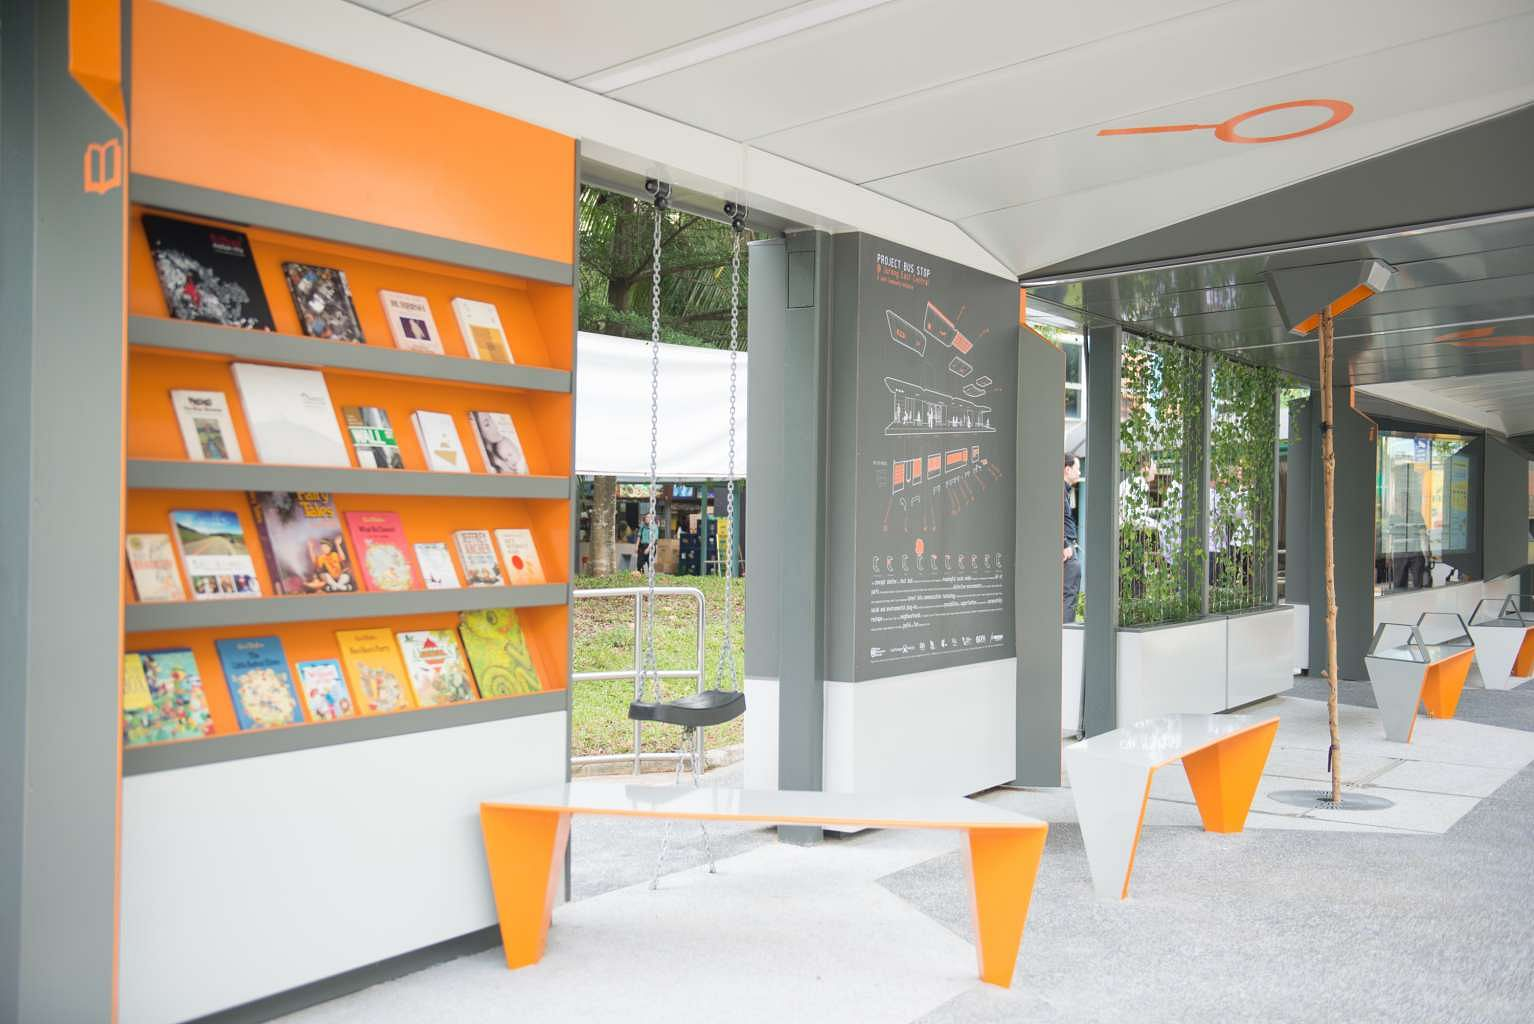 This Bus Stop In Singapore Has Free Wifi Books And Even